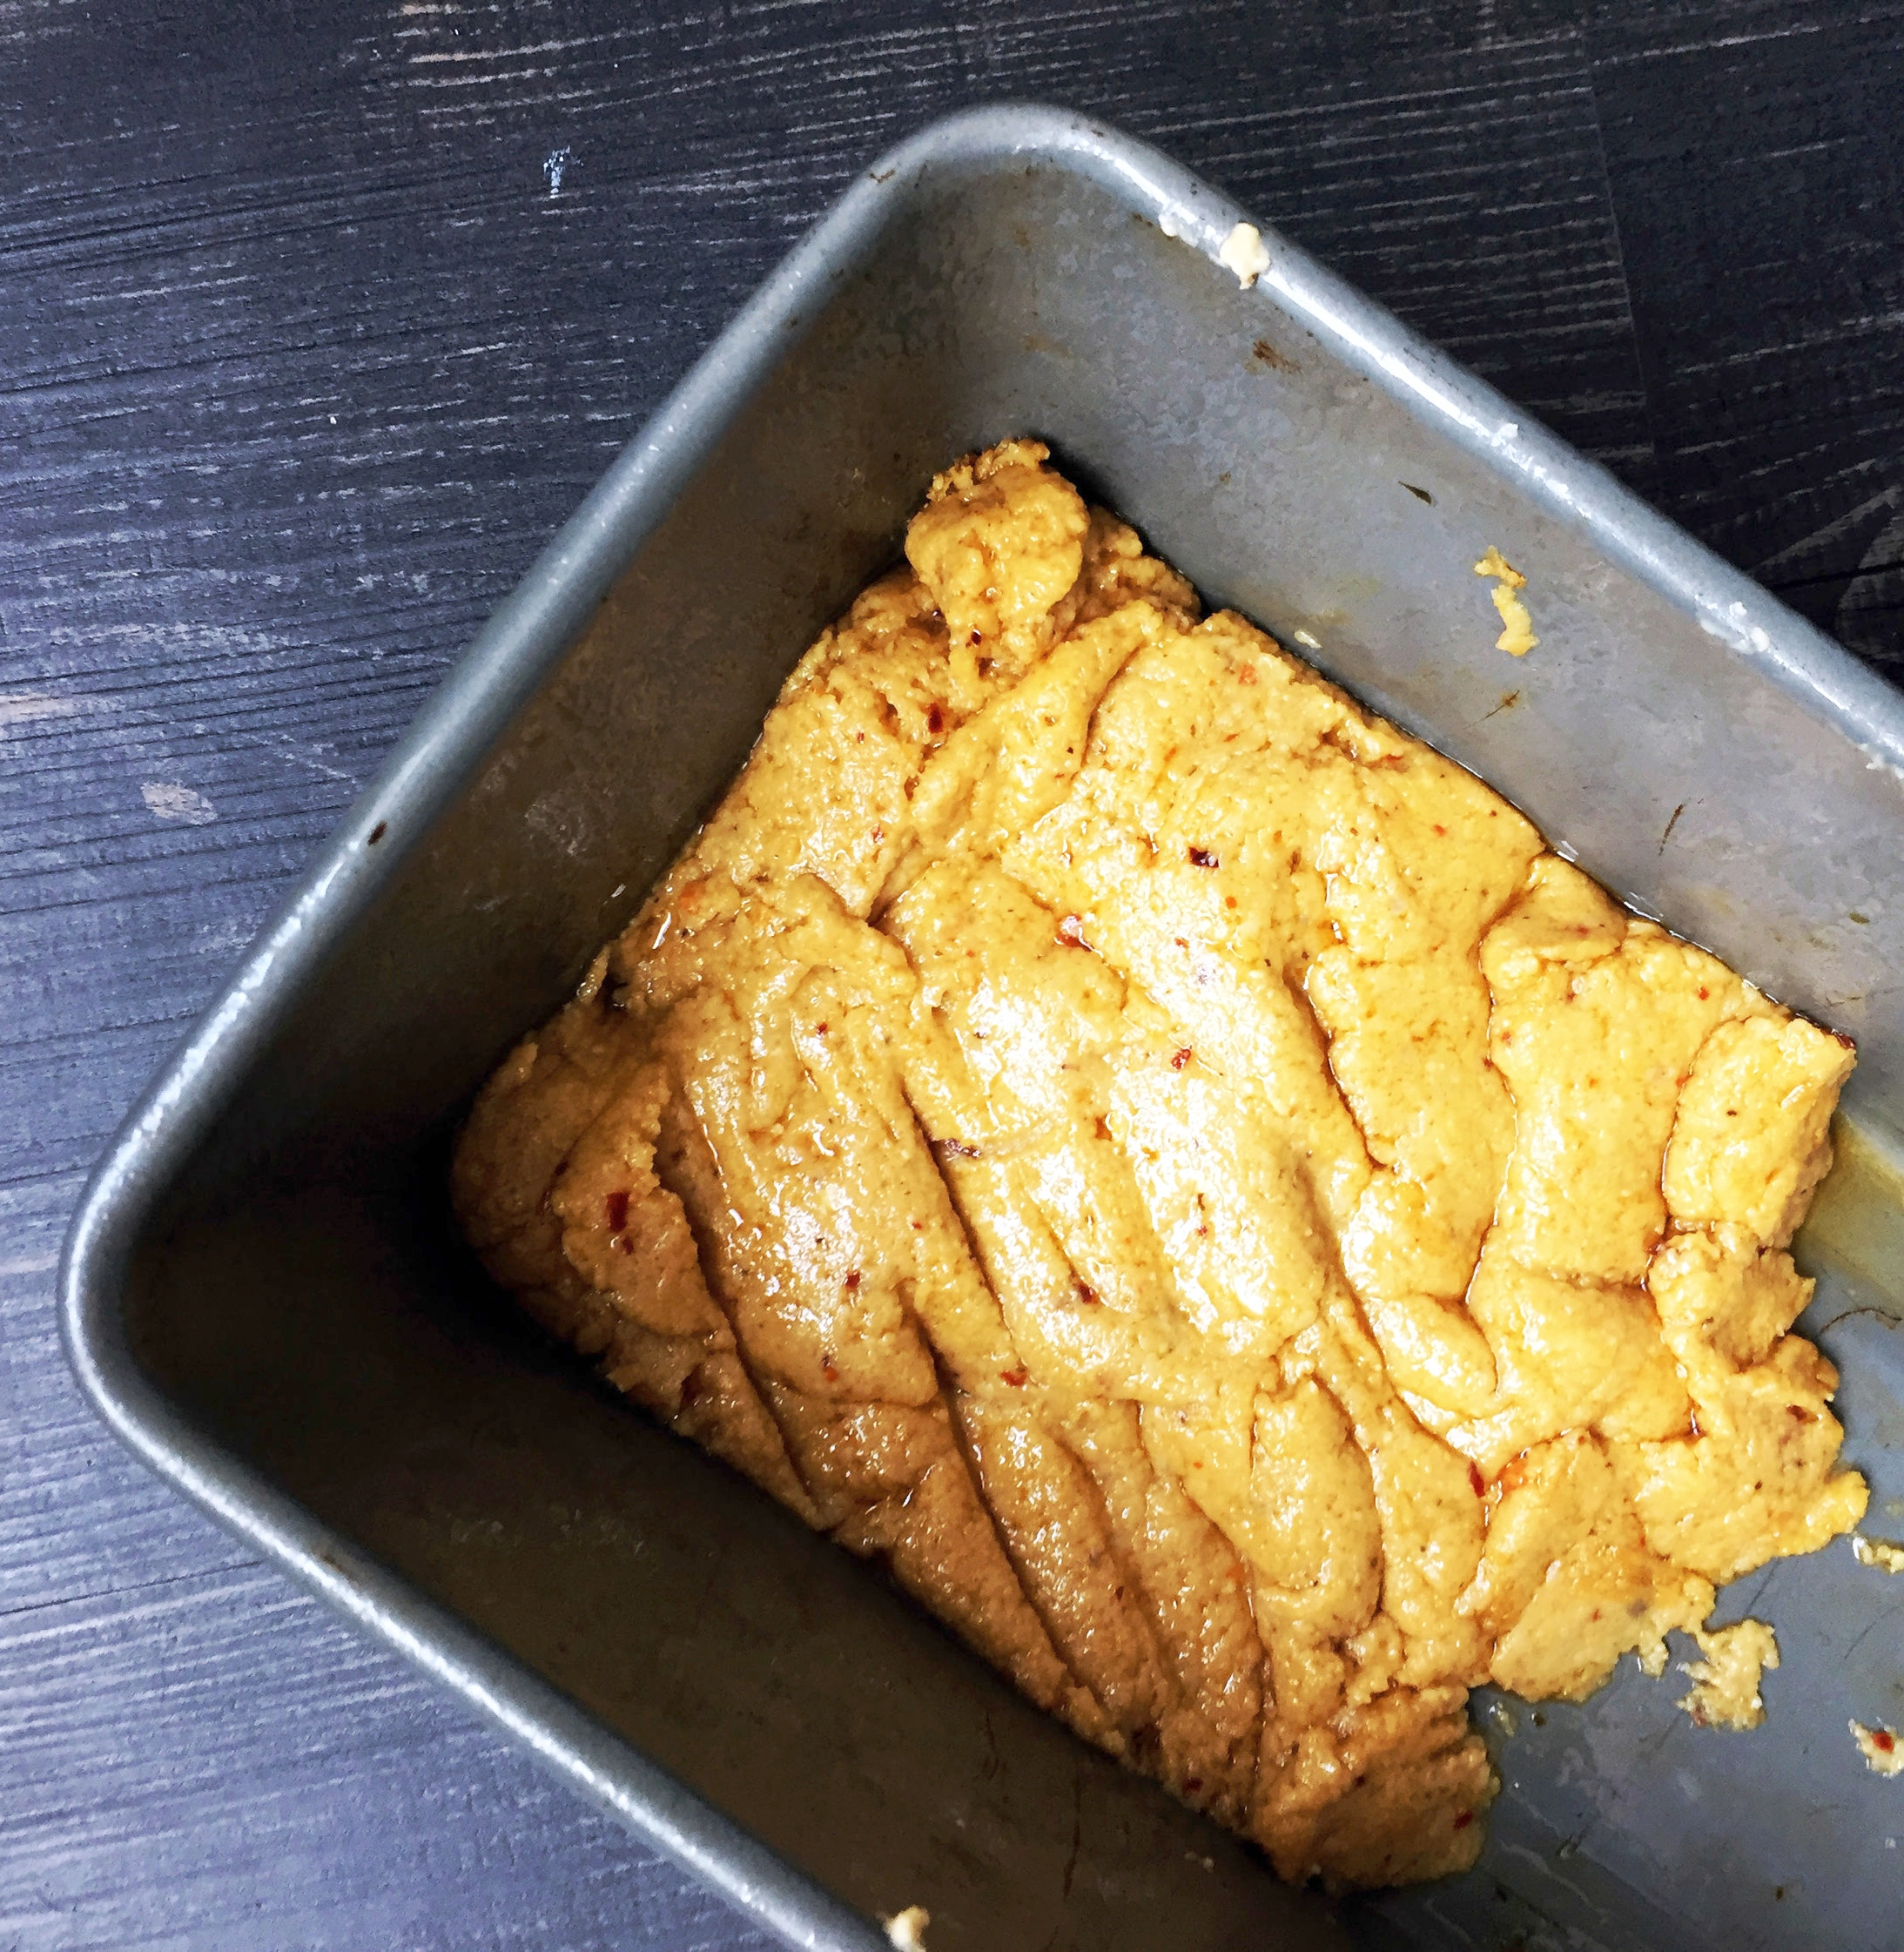 4. Place sauce into a loaf pan that is fairly small. It won't fill the whole pan. You want it to be roughly 1/2 inch thick height. Set in fridge for one hour.